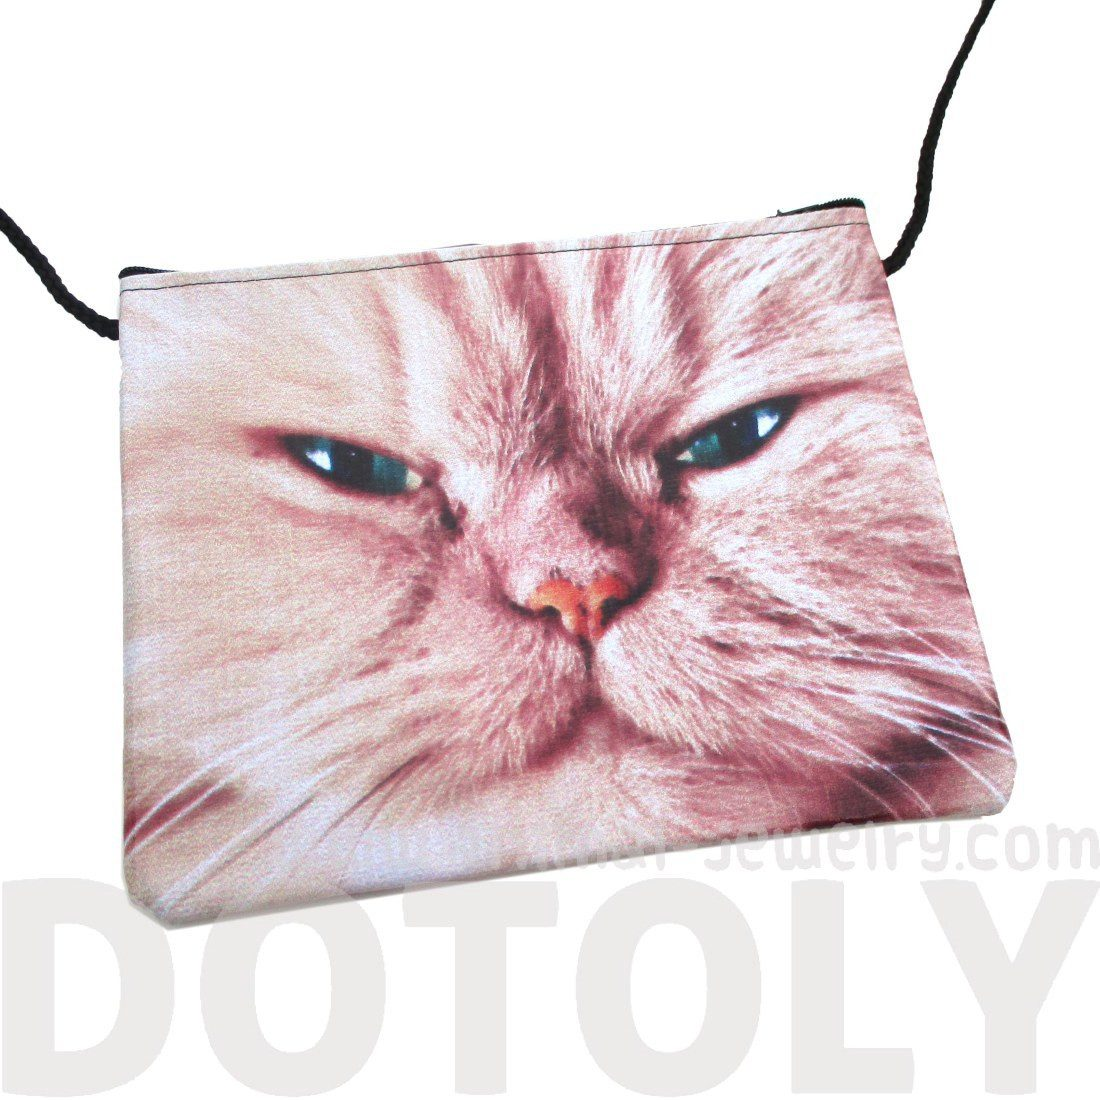 Grumpy Evil Kitty Cat Face Print Cross Body Bag | Gifts for Cat Lovers